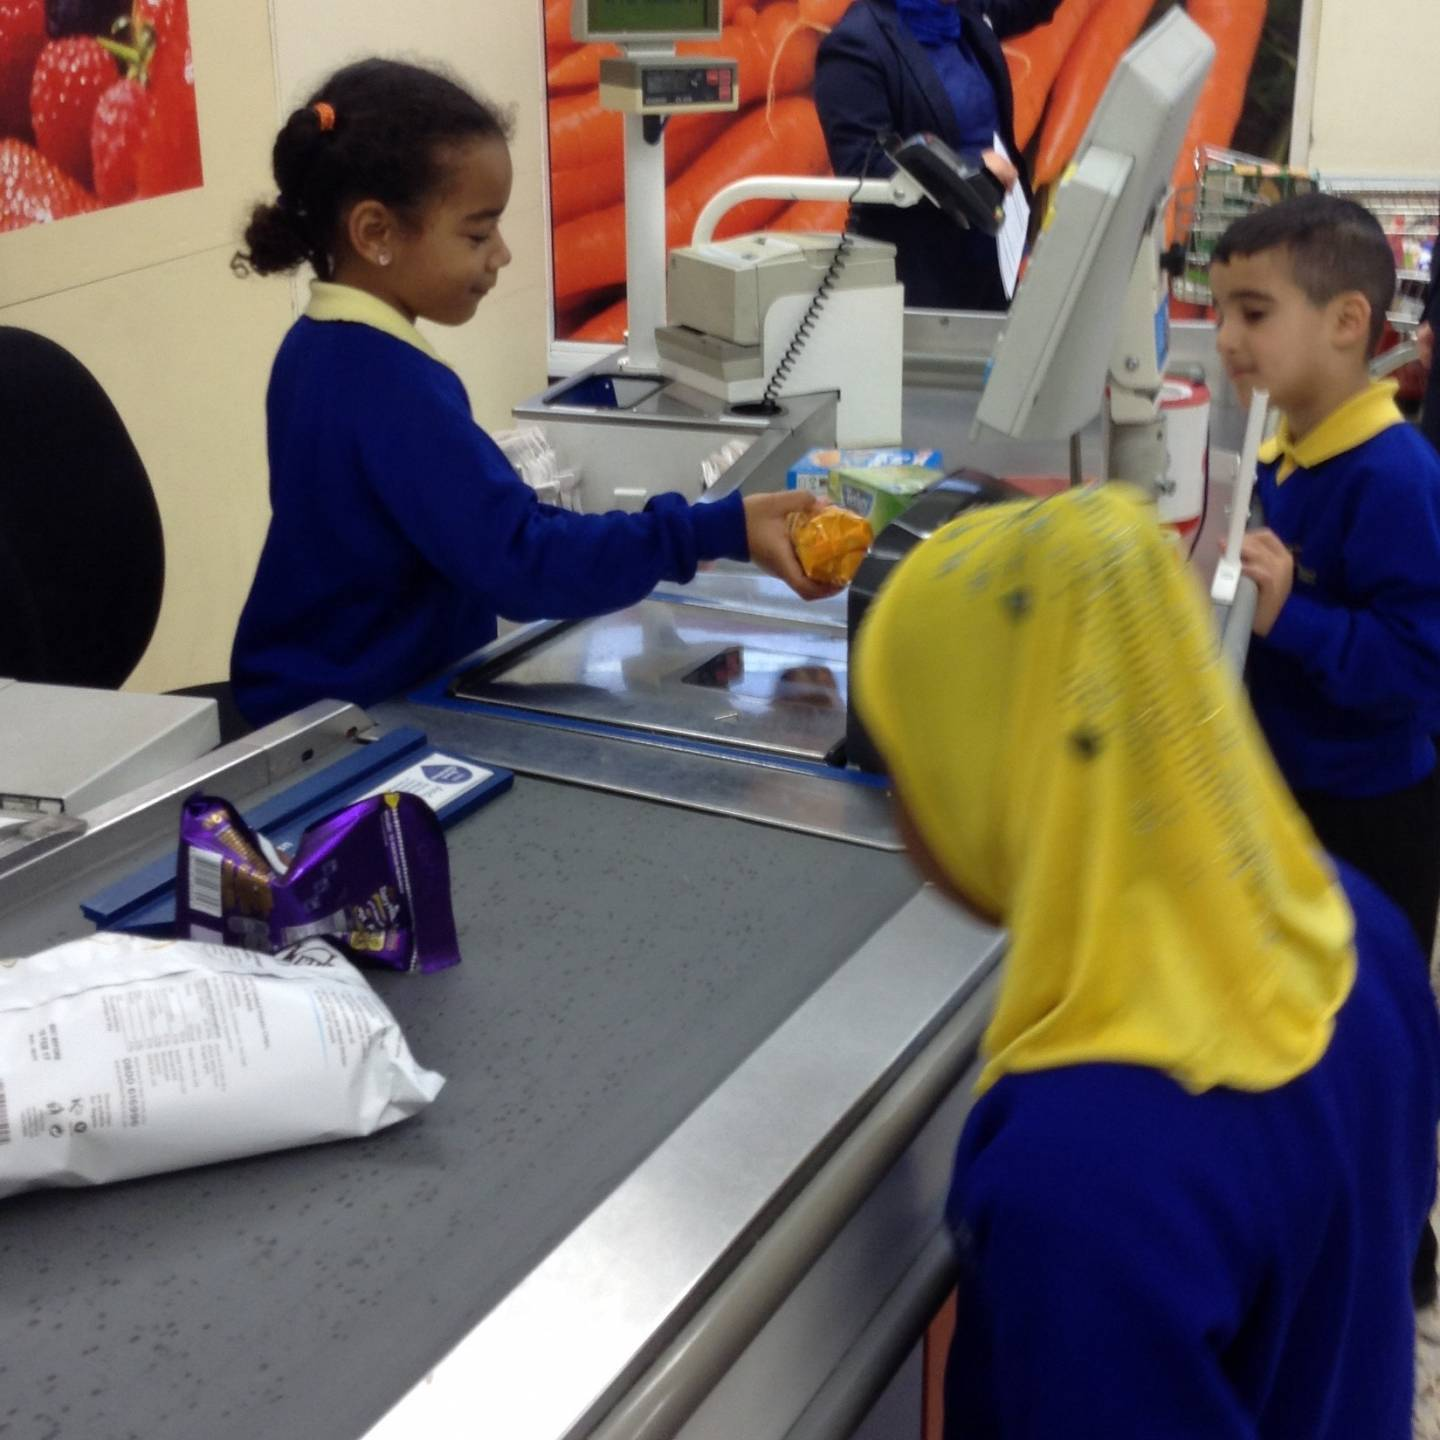 Tesco Checkout 4